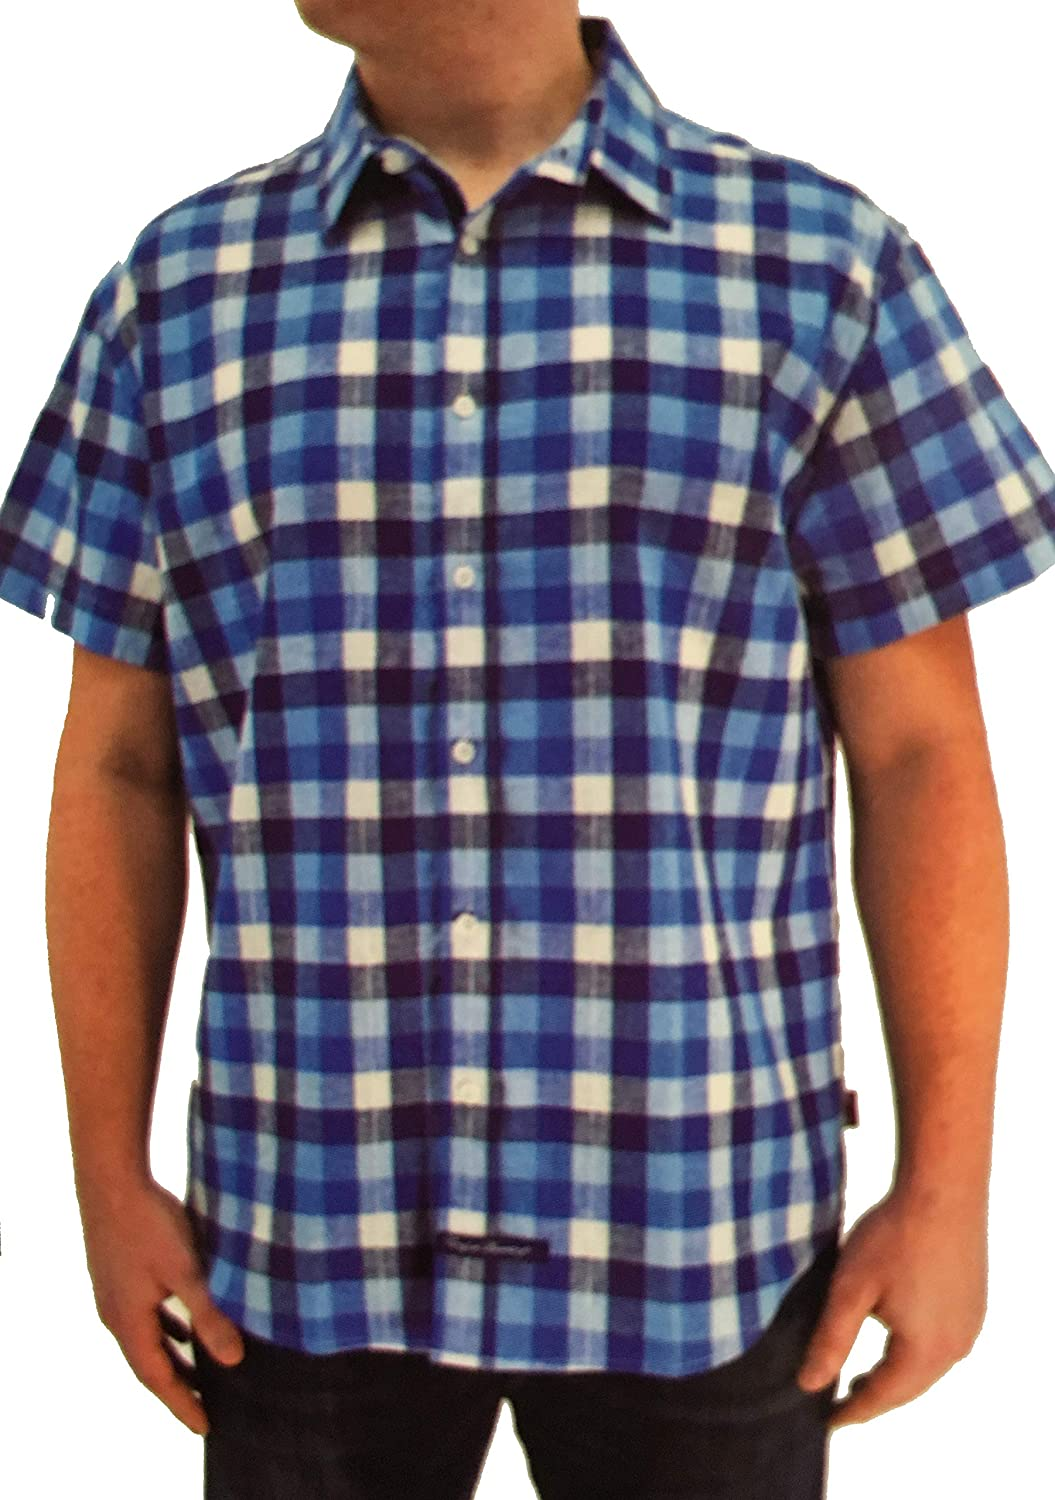 English Laundry Short Sleeve Plaid Shirt (Medium, Blue/Navy Plaid)